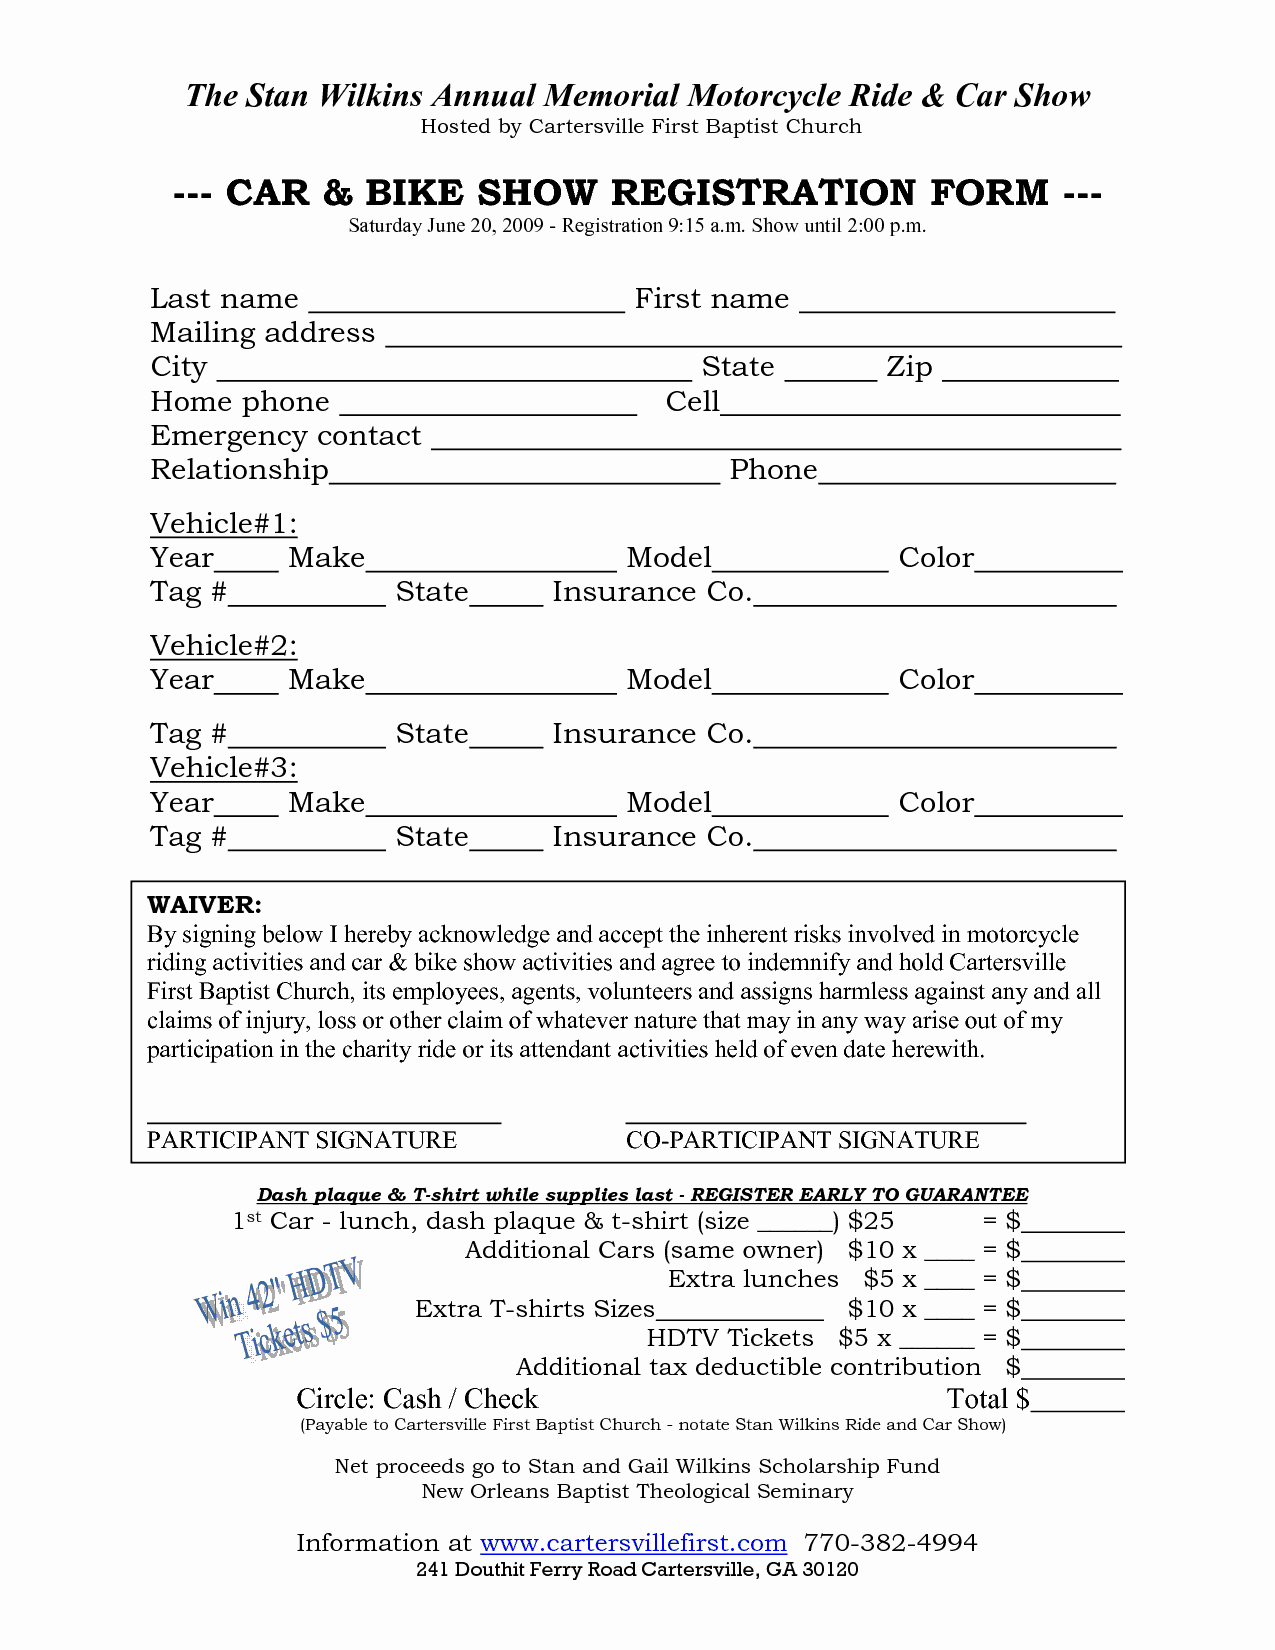 Registration form Template Microsoft Word Fresh Car Show Registration form Templates Word Excel Samples